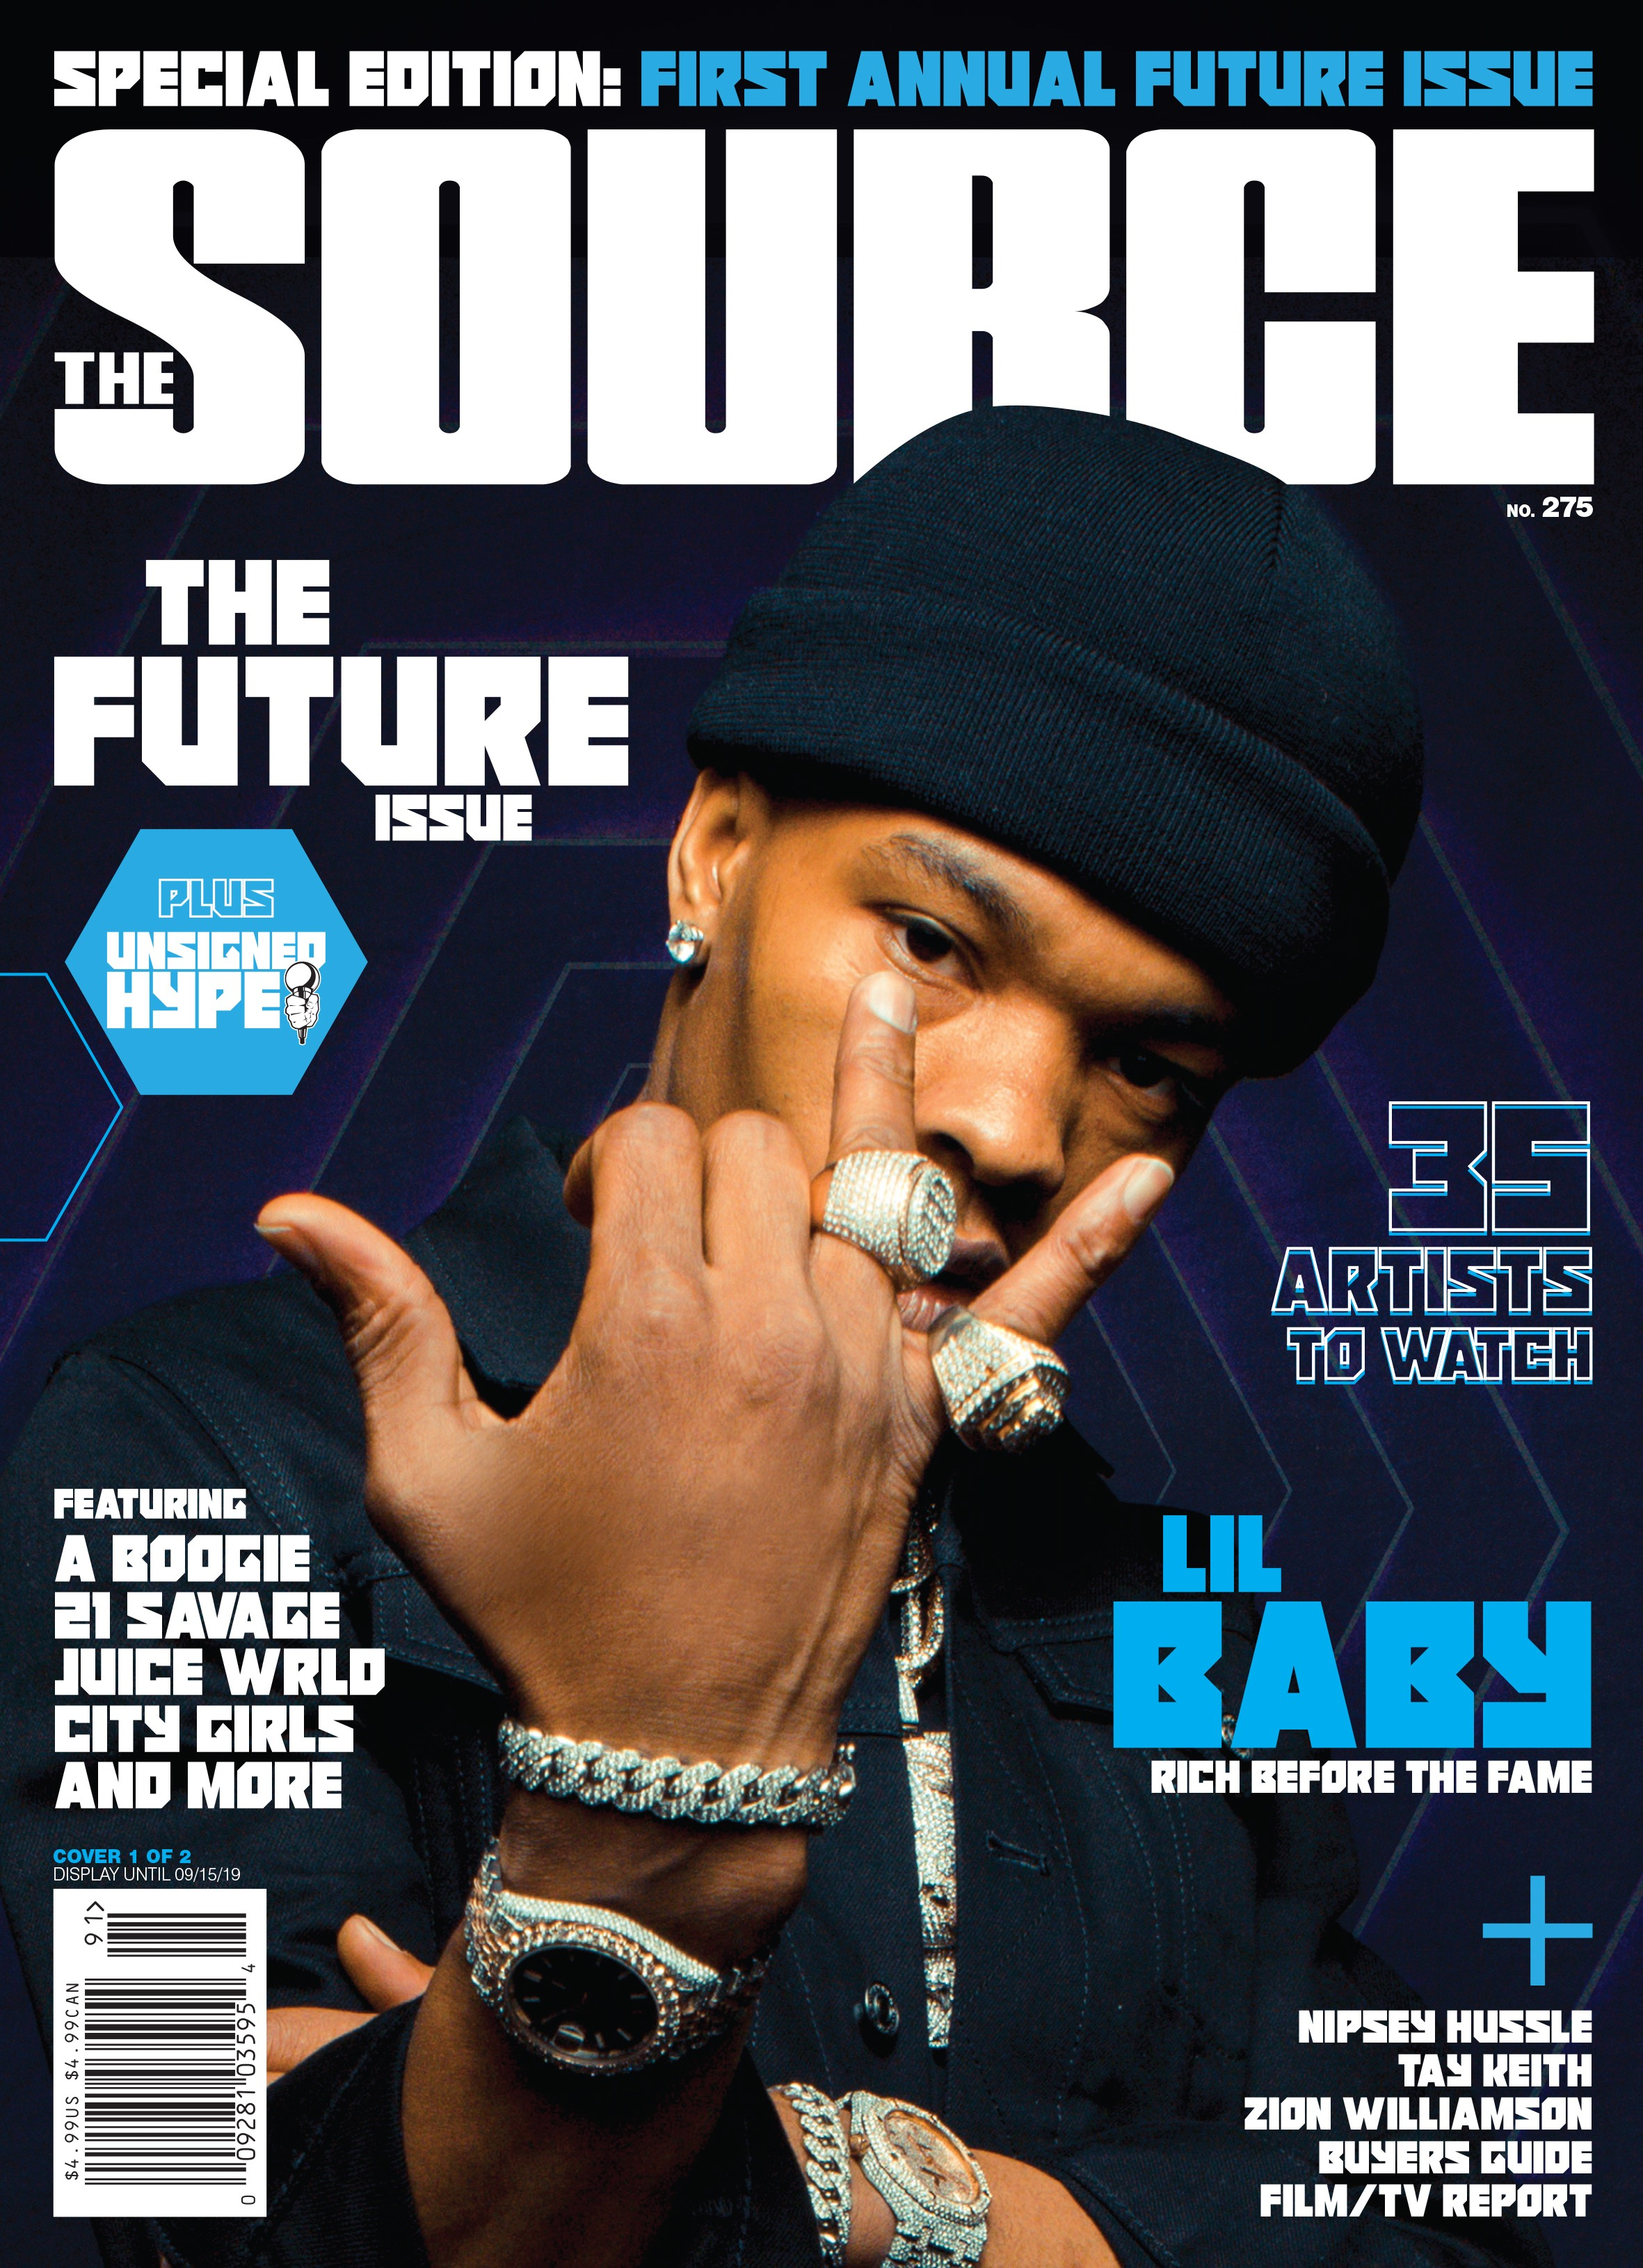 Exclusive: Lil Baby Represents Atlanta on the Cover of The Source's Inaugural 'The Future' Issue